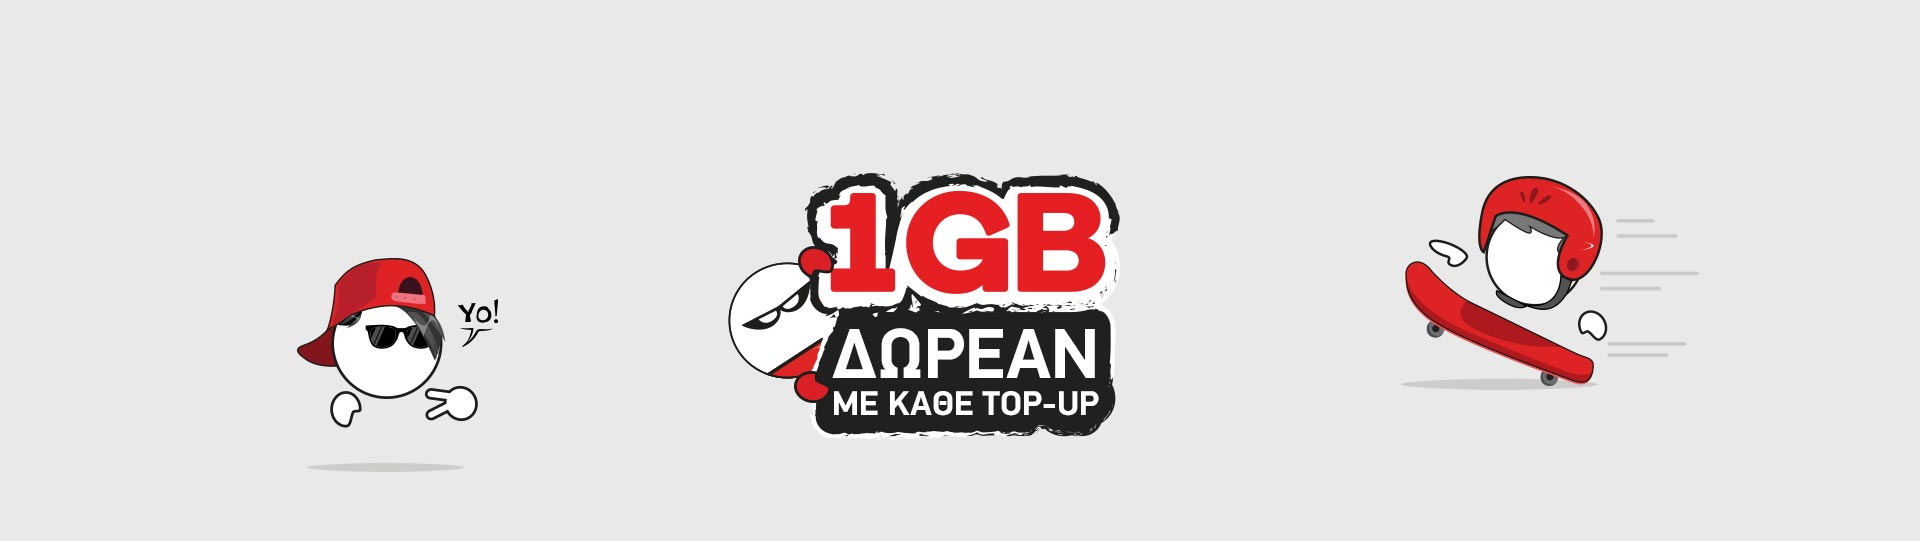 Foto - 1GB dorean top-up